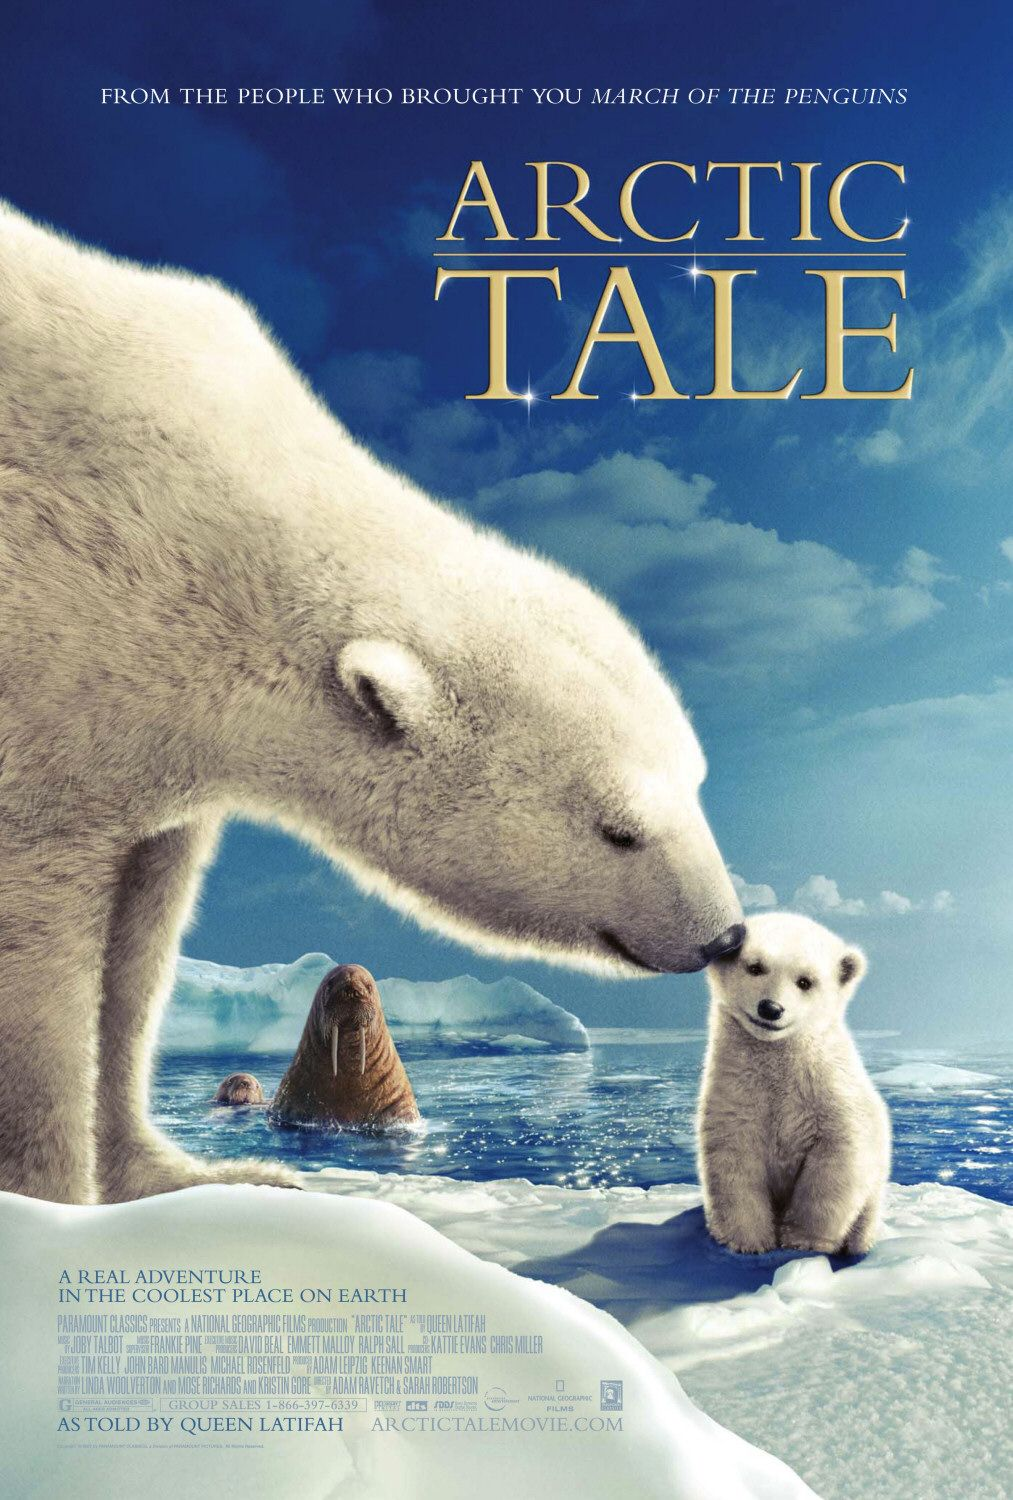 Arctic Tale film poster